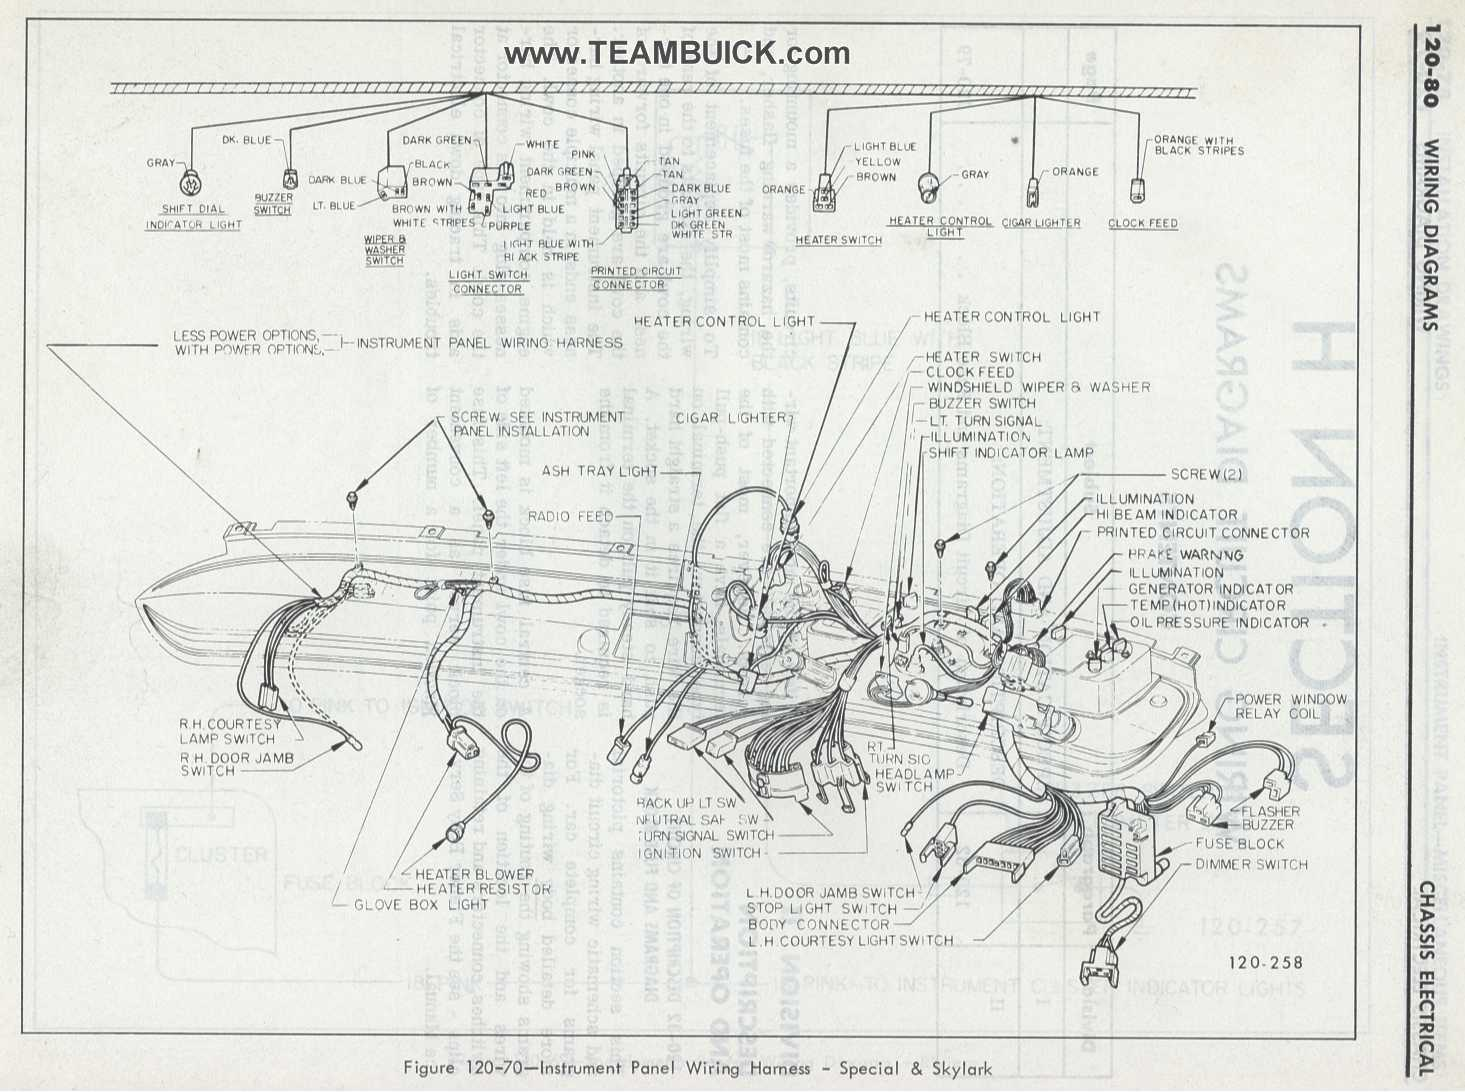 1967 Buick Special Wiring Diagram Daily Update 1965 Dodge Dart Fuse Box Diagrams